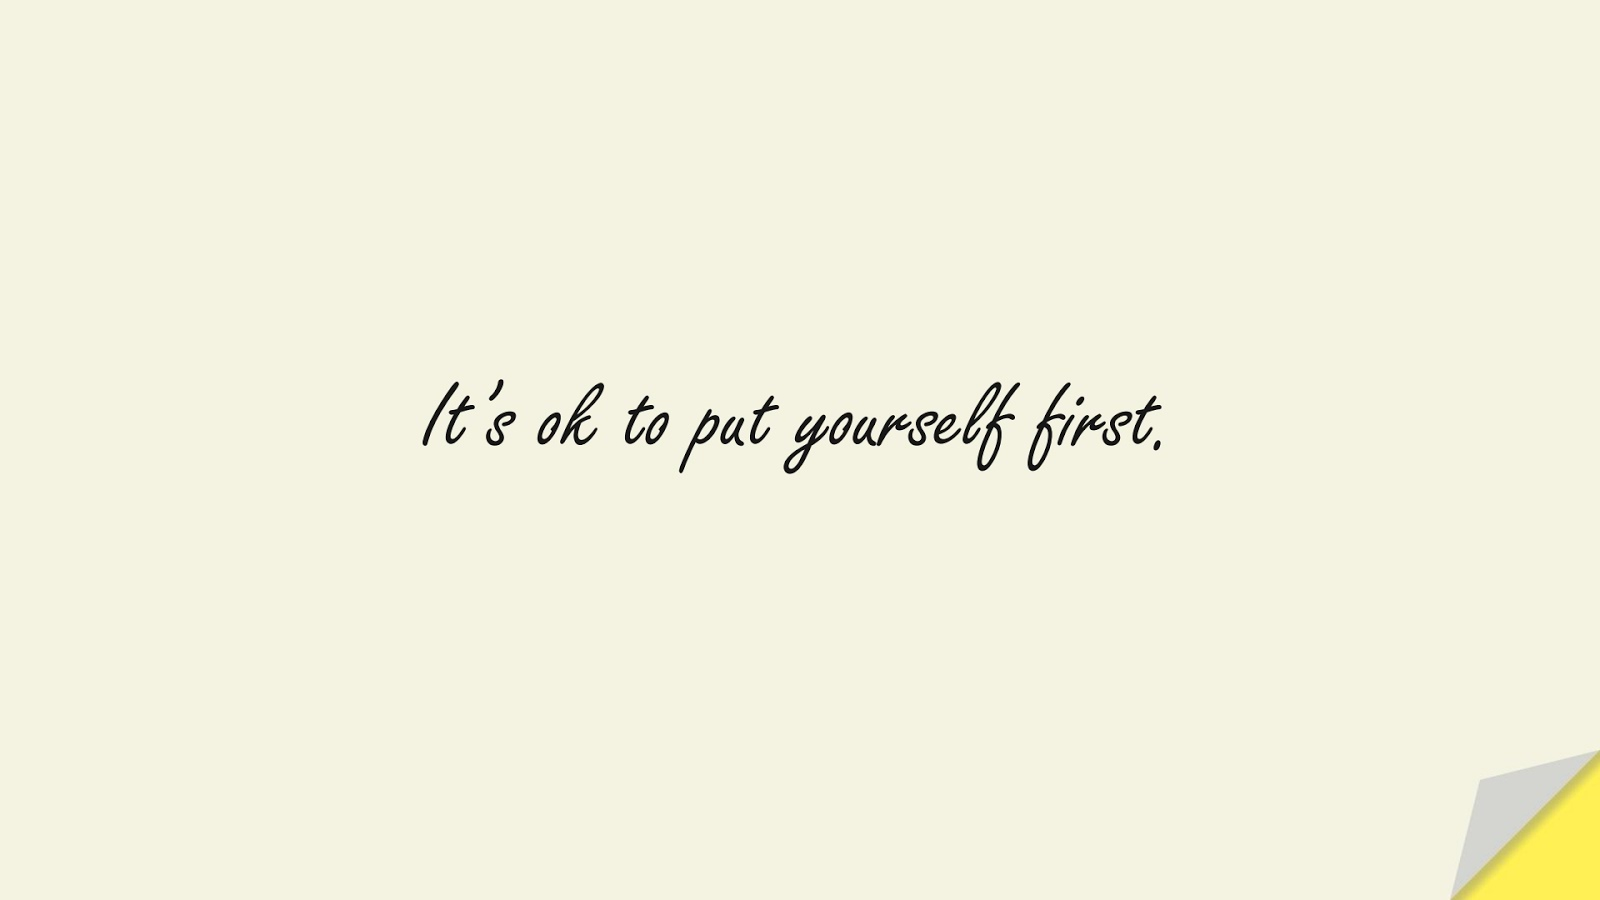 It's ok to put yourself first.FALSE